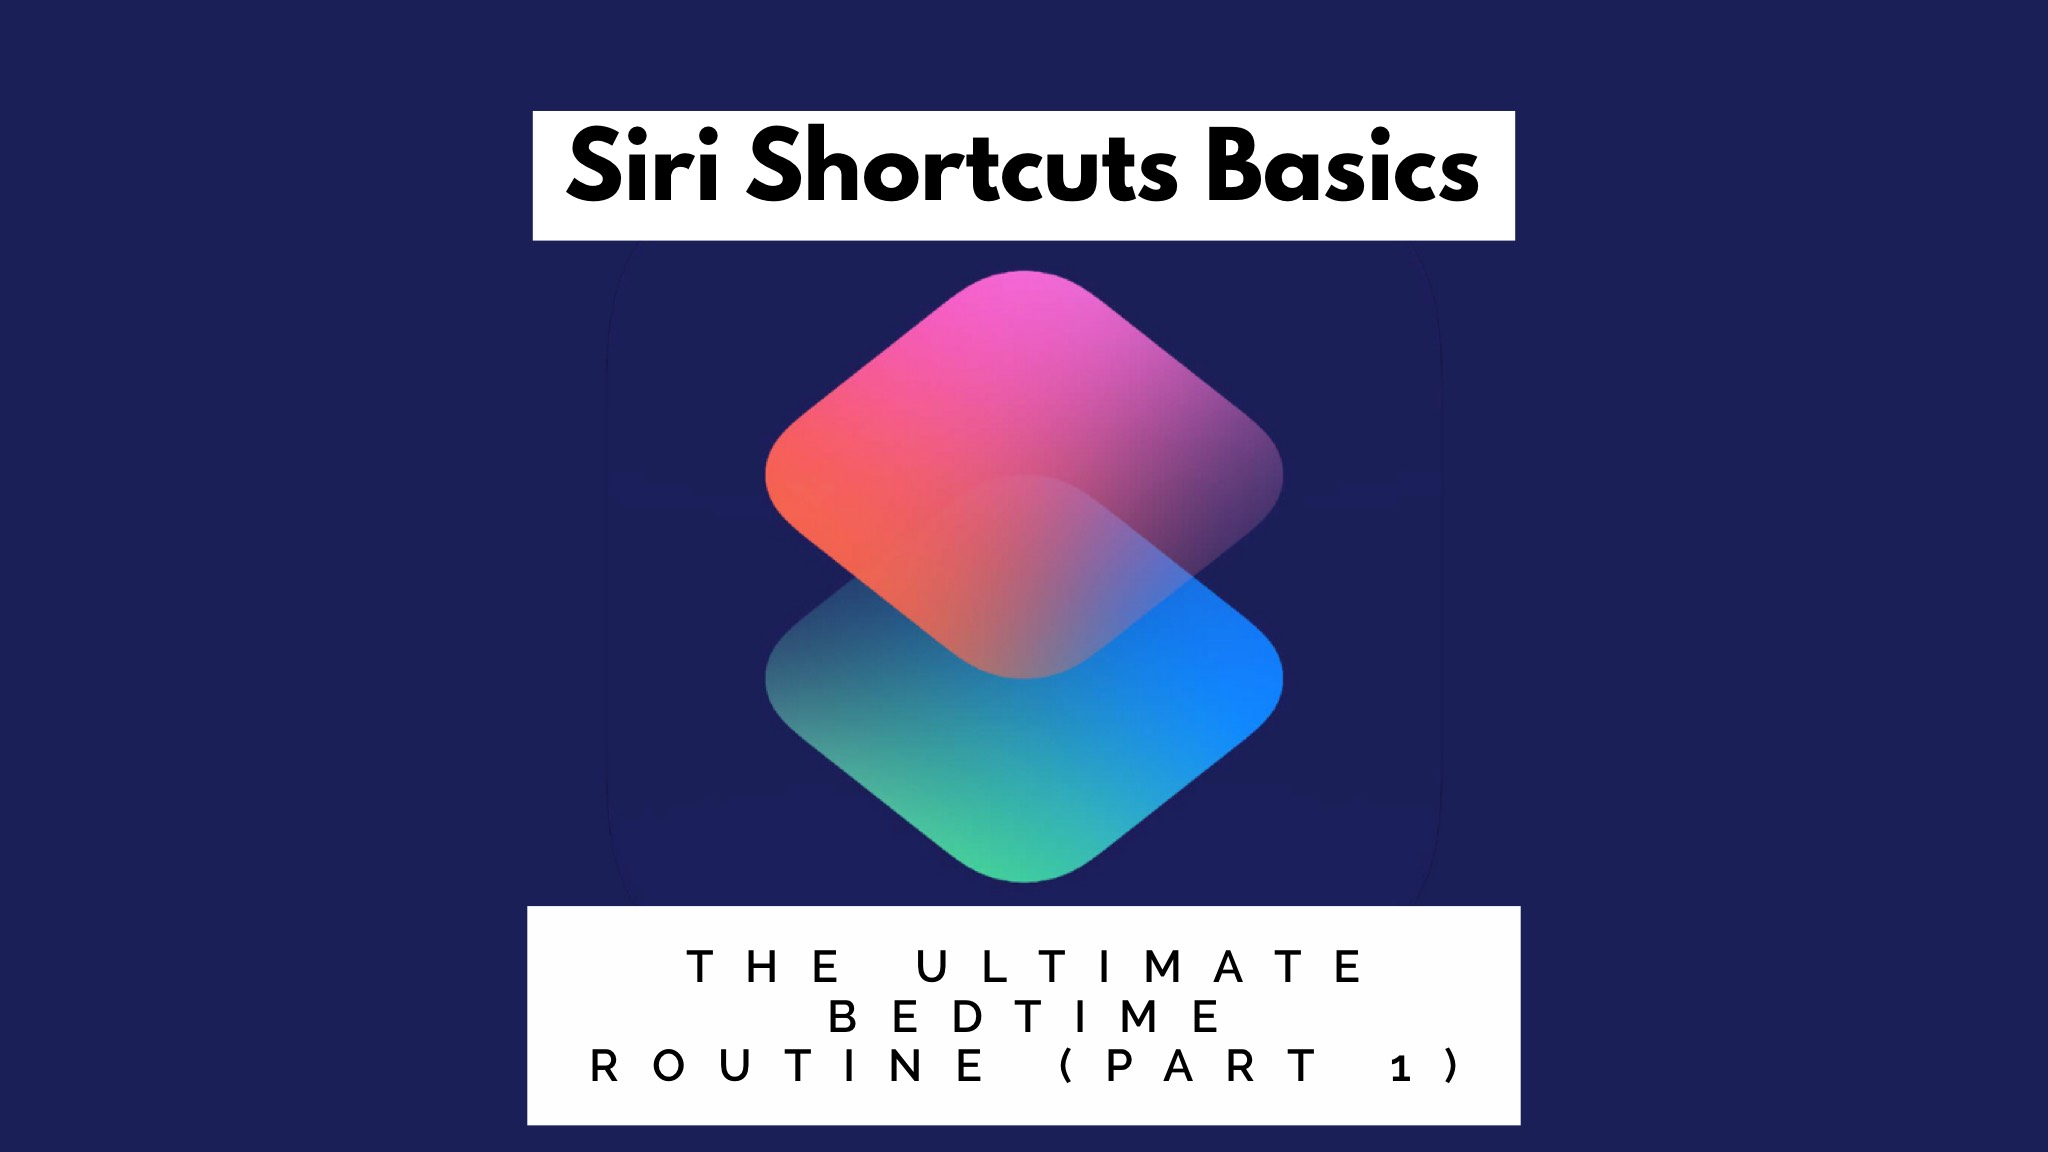 Siri Shortcuts Basics: The Ultimate Bedtime Routine (Part I